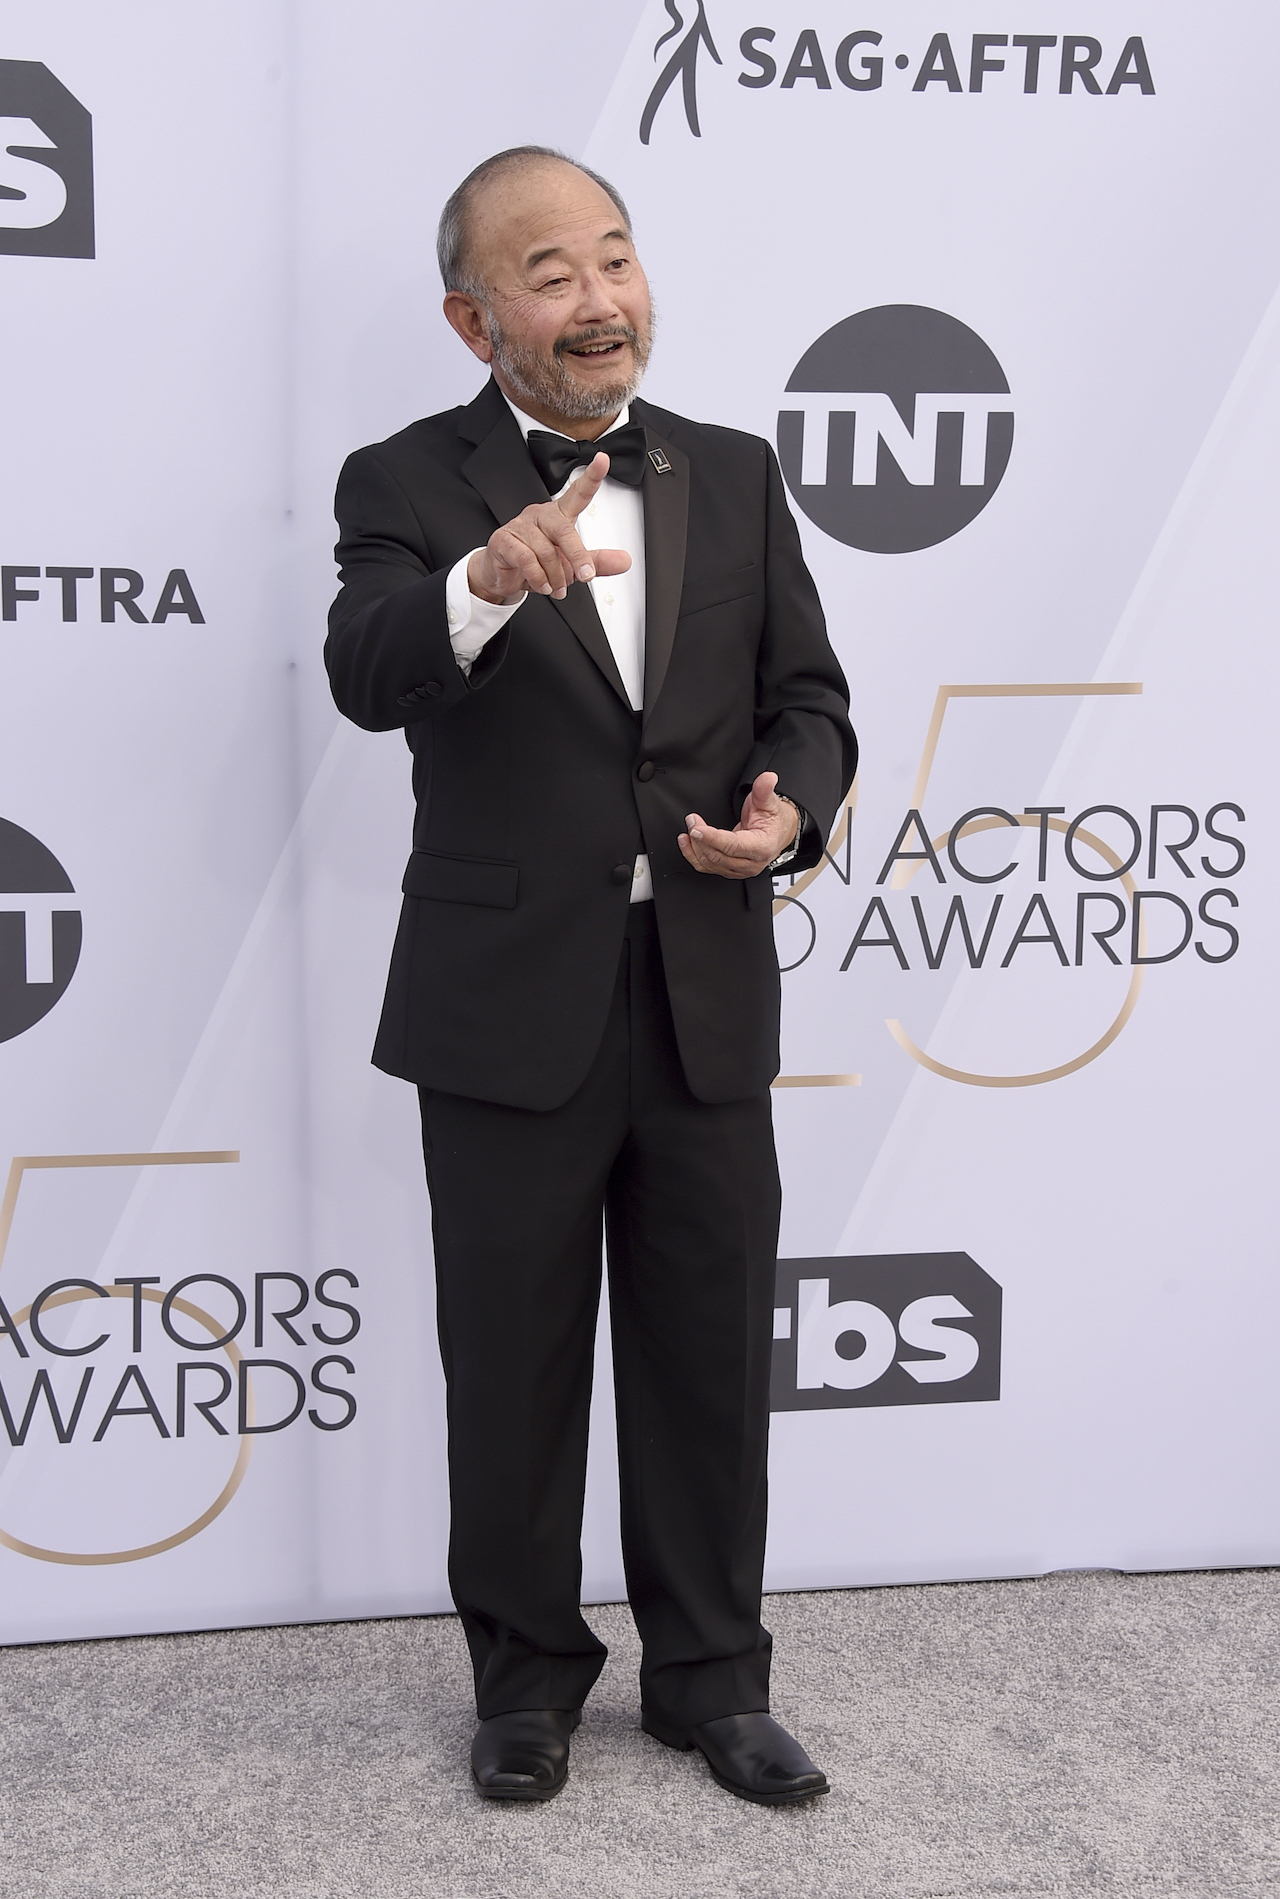 <div class='meta'><div class='origin-logo' data-origin='AP'></div><span class='caption-text' data-credit='Jordan Strauss/Invision/AP'>Clyde Kusatsu arrives at the 25th annual Screen Actors Guild Awards at the Shrine Auditorium & Expo Hall on Sunday, Jan. 27, 2019, in Los Angeles.</span></div>